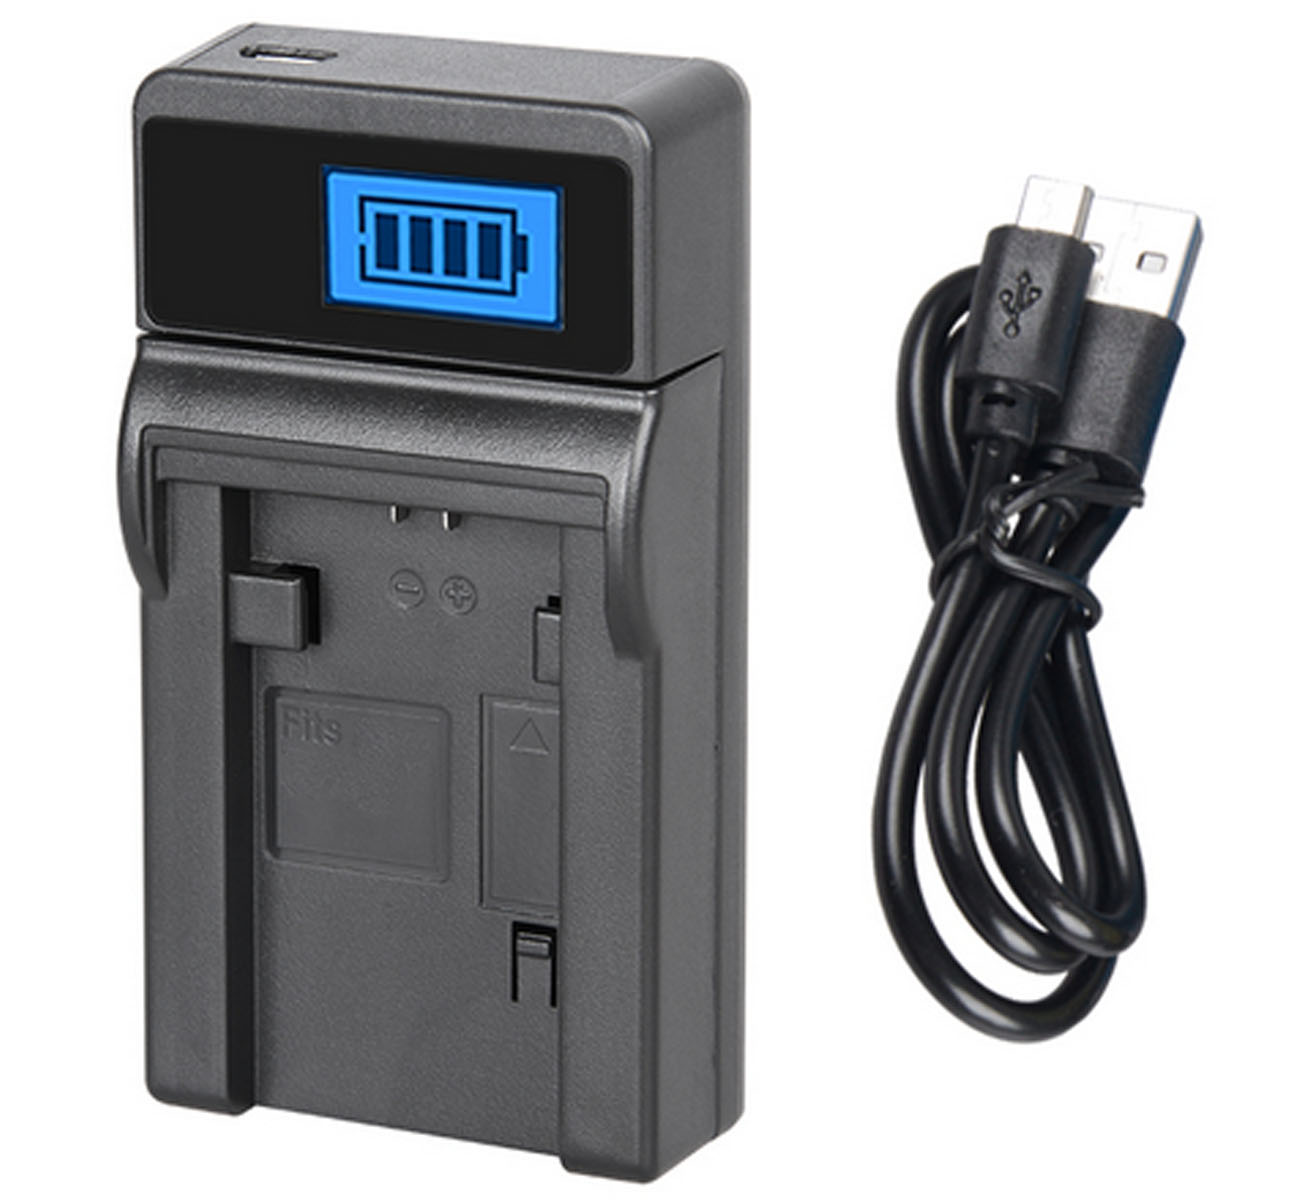 LCD USB Travel Battery Charger for Sony DCR-HC14 DCR-HC14E DCR-HC15E Handycam Camcorder DCR-HC15